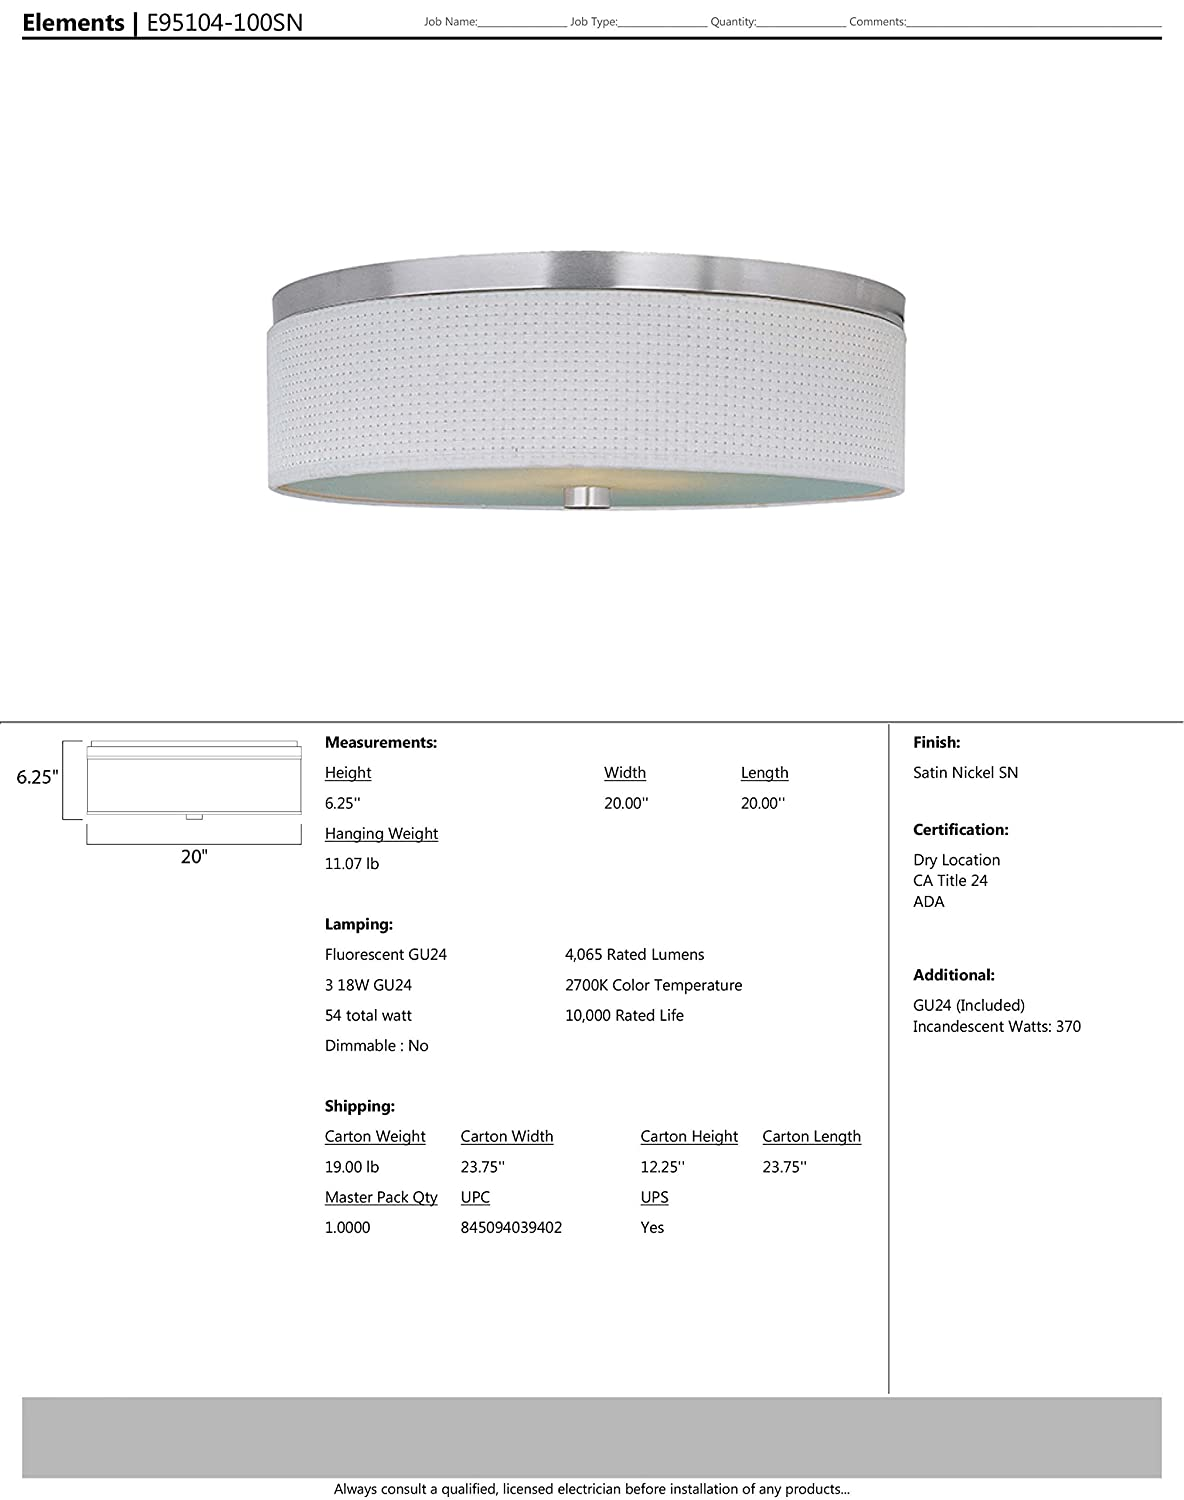 20W Max. Low-Voltage Dimmable 2880 Rated Lumens Maxim Lighting Glass Shade Material ET2 E95104-100SN Elements 3-Light Flush Mount Glass Dry Safety Rated Satin Nickel Finish 2900K Color Temp. GU24 Fluorescent Bulb